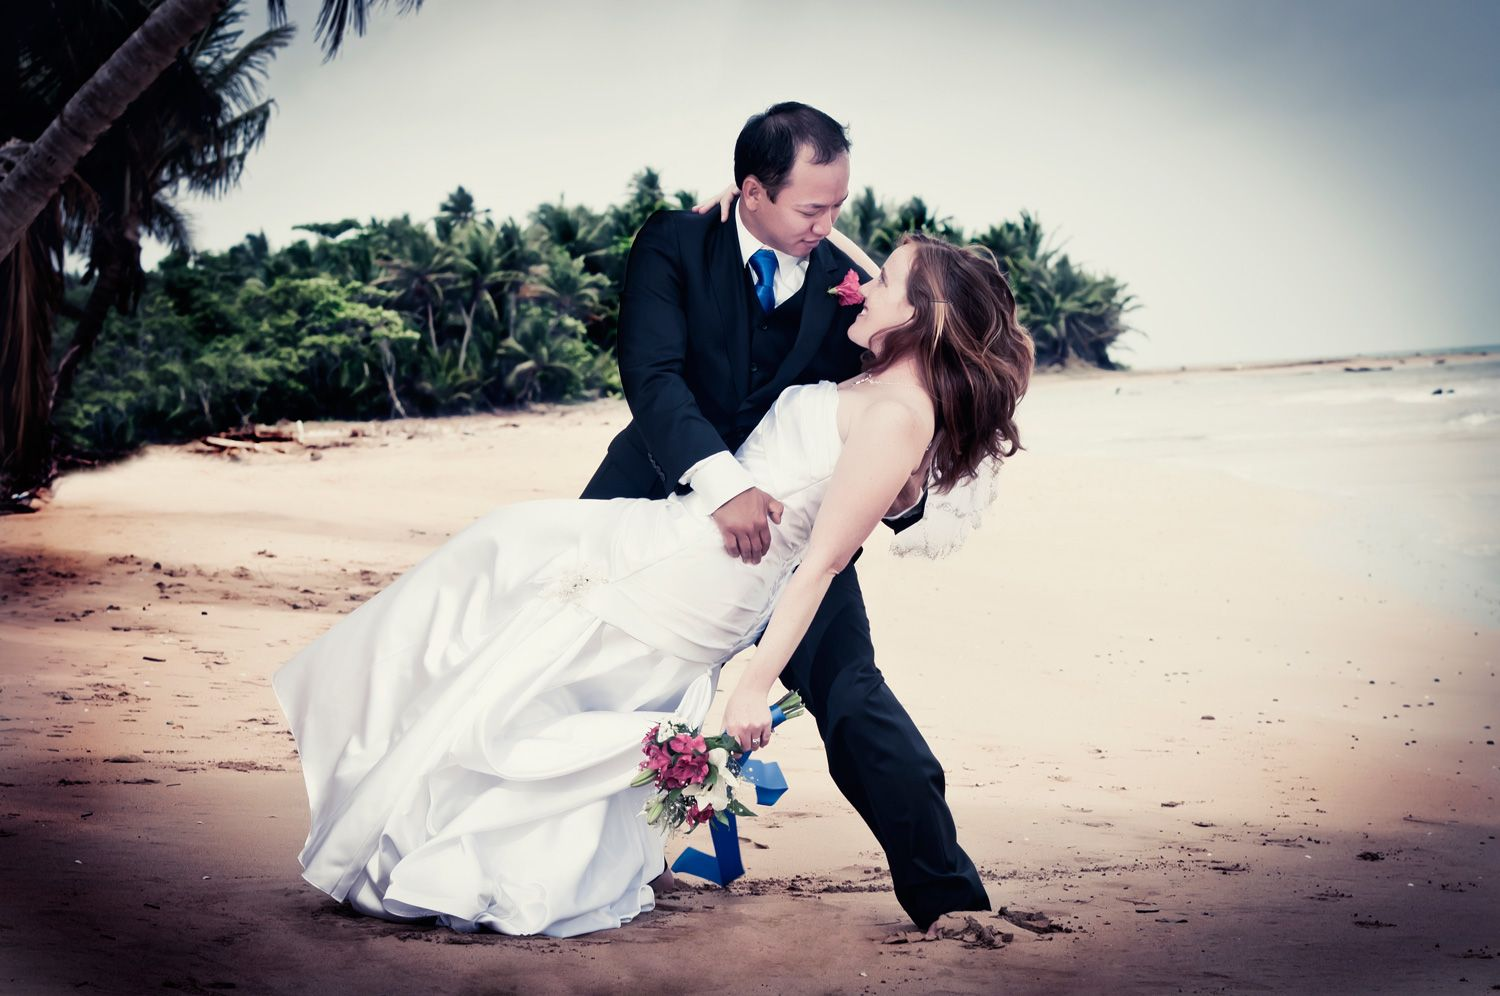 Monica & Mike @ Luquillo Beach, PR.